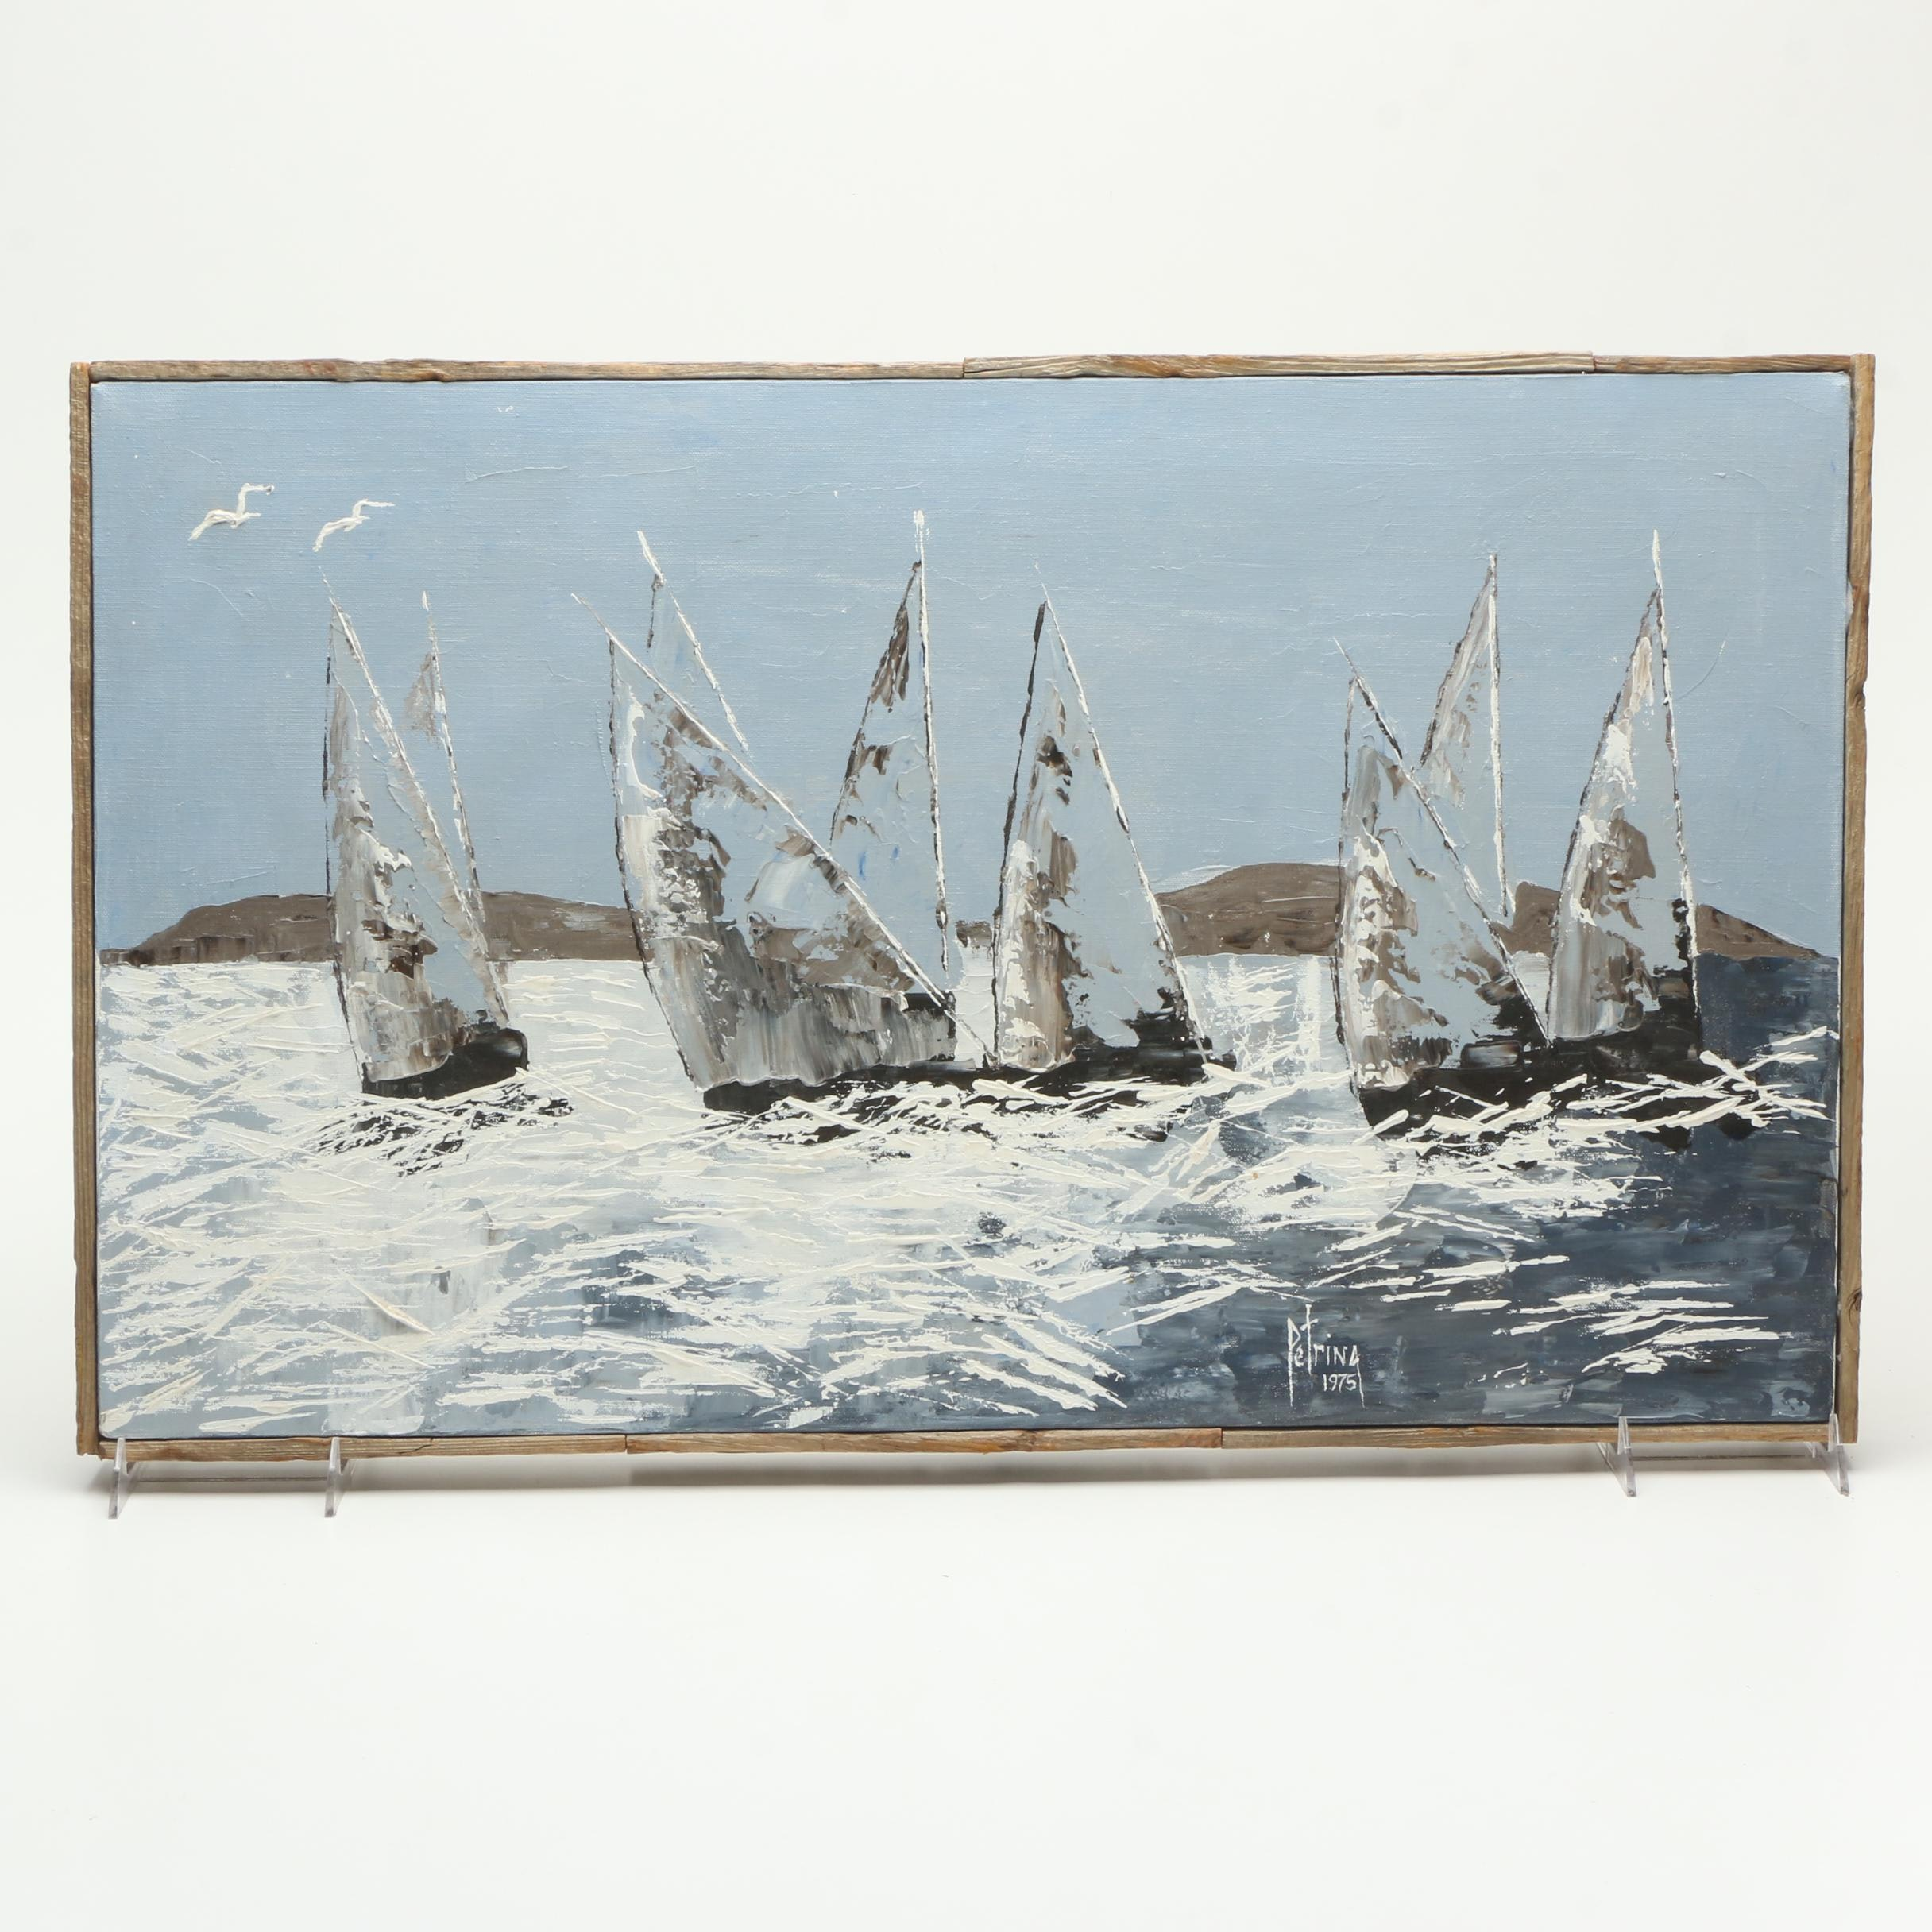 Alice Petrina 1975 Oil Painting on Canvas of Sailboats in Blue, White and Grey